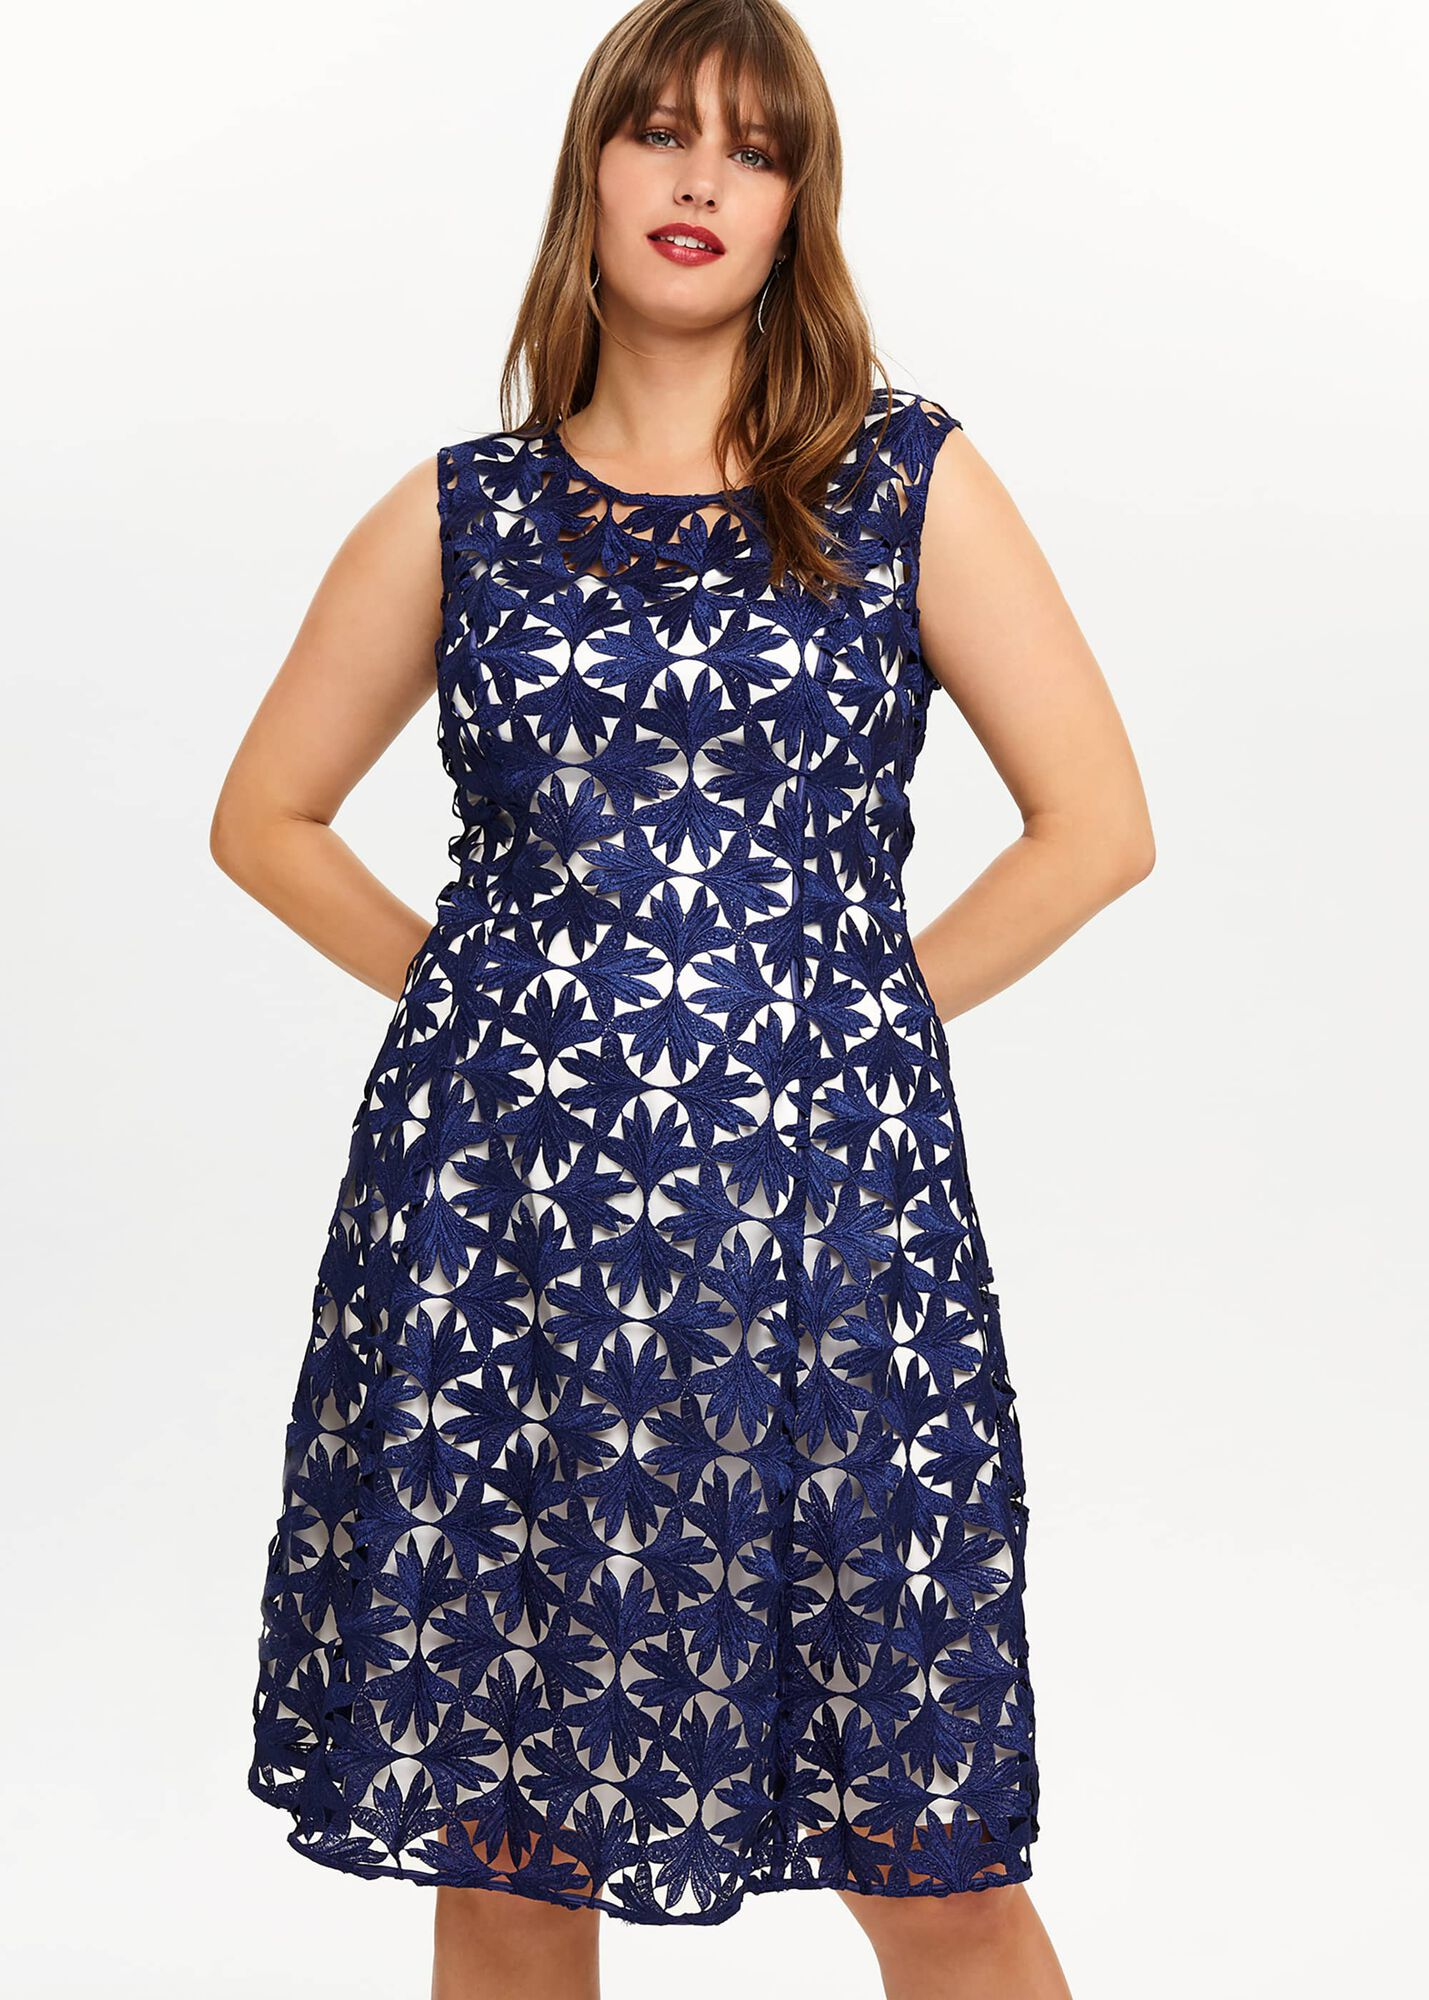 Lilah Lace Dress | Phase Eight | Phase Eight